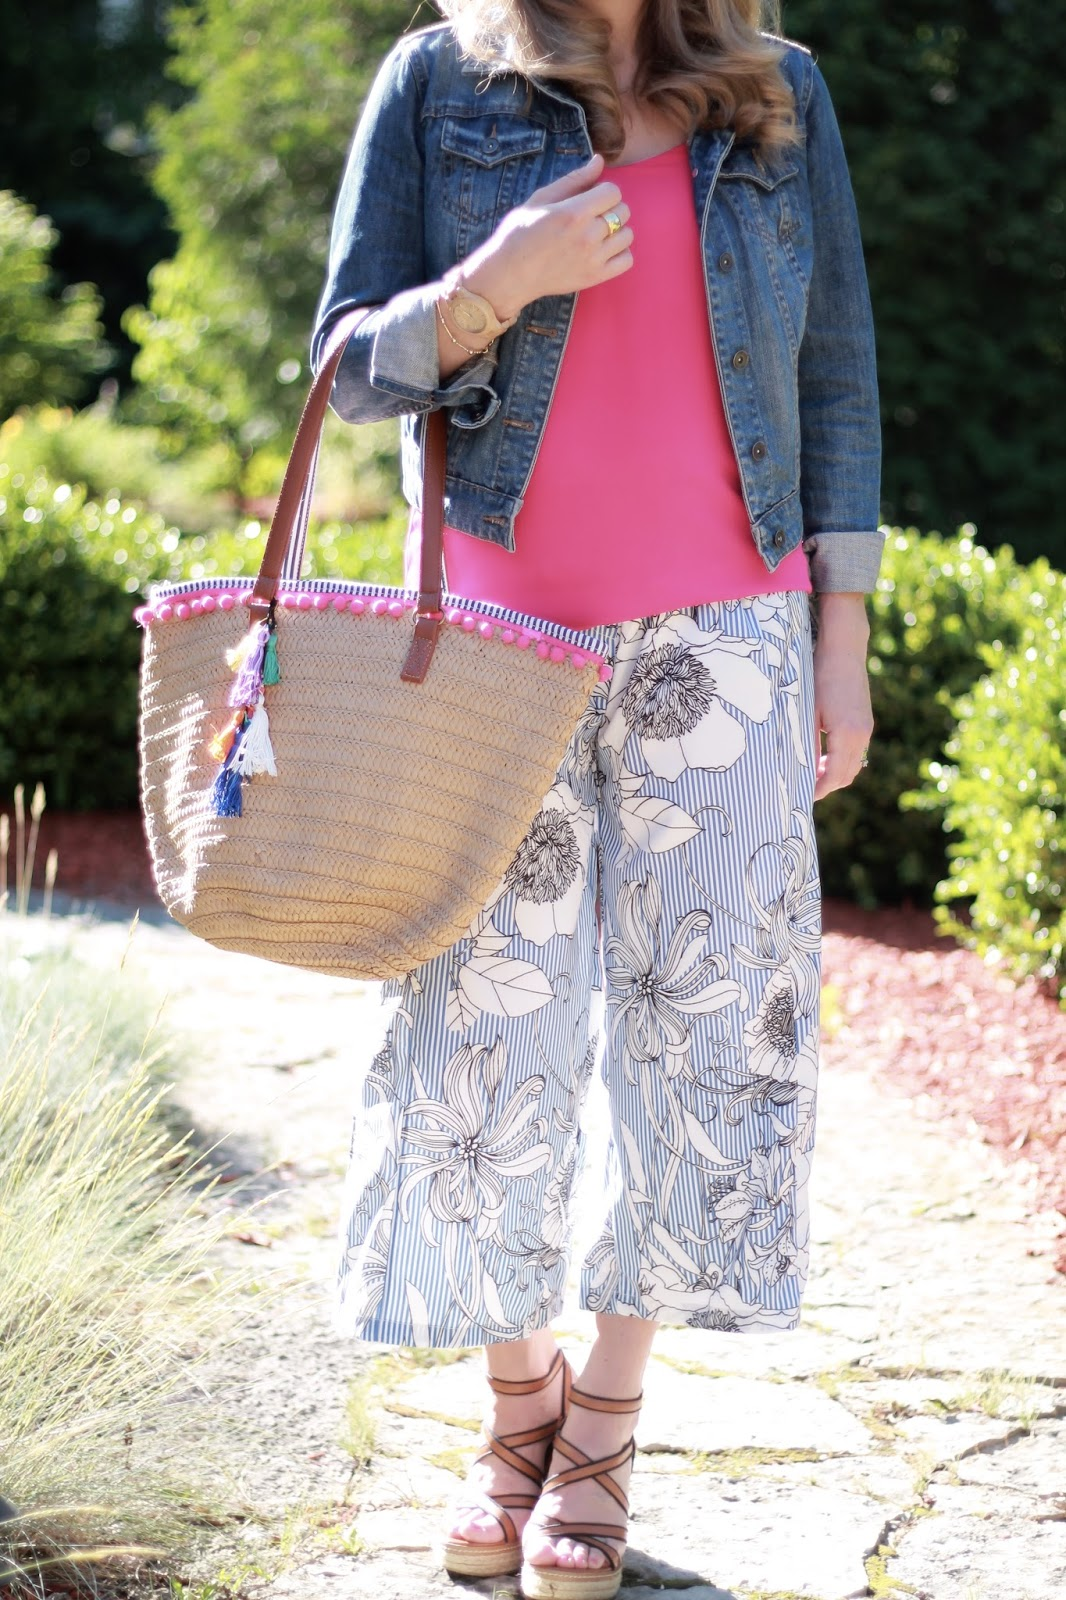 denim jacket, pink Express Barcelona cami, blue striped floral culottes, straw tassel tote, second trimester summer maternity outfit